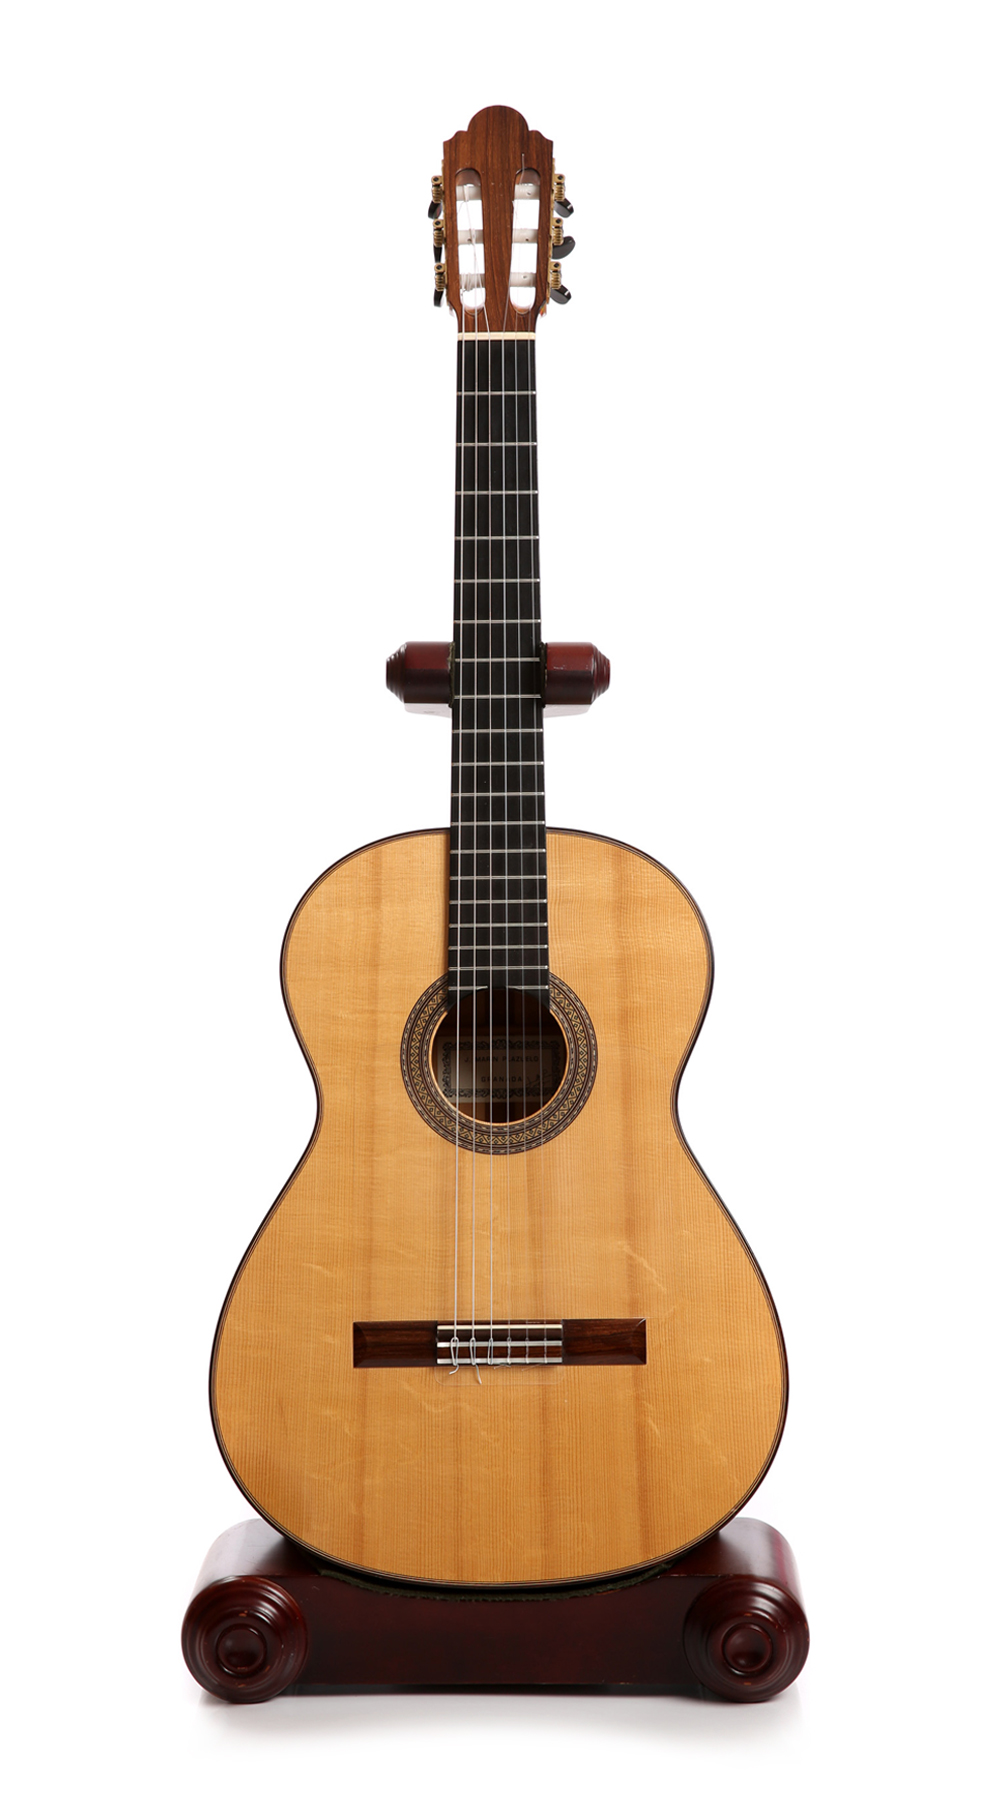 Jose Marin Plazuelo flamenco guitar blanca 2011 No 690